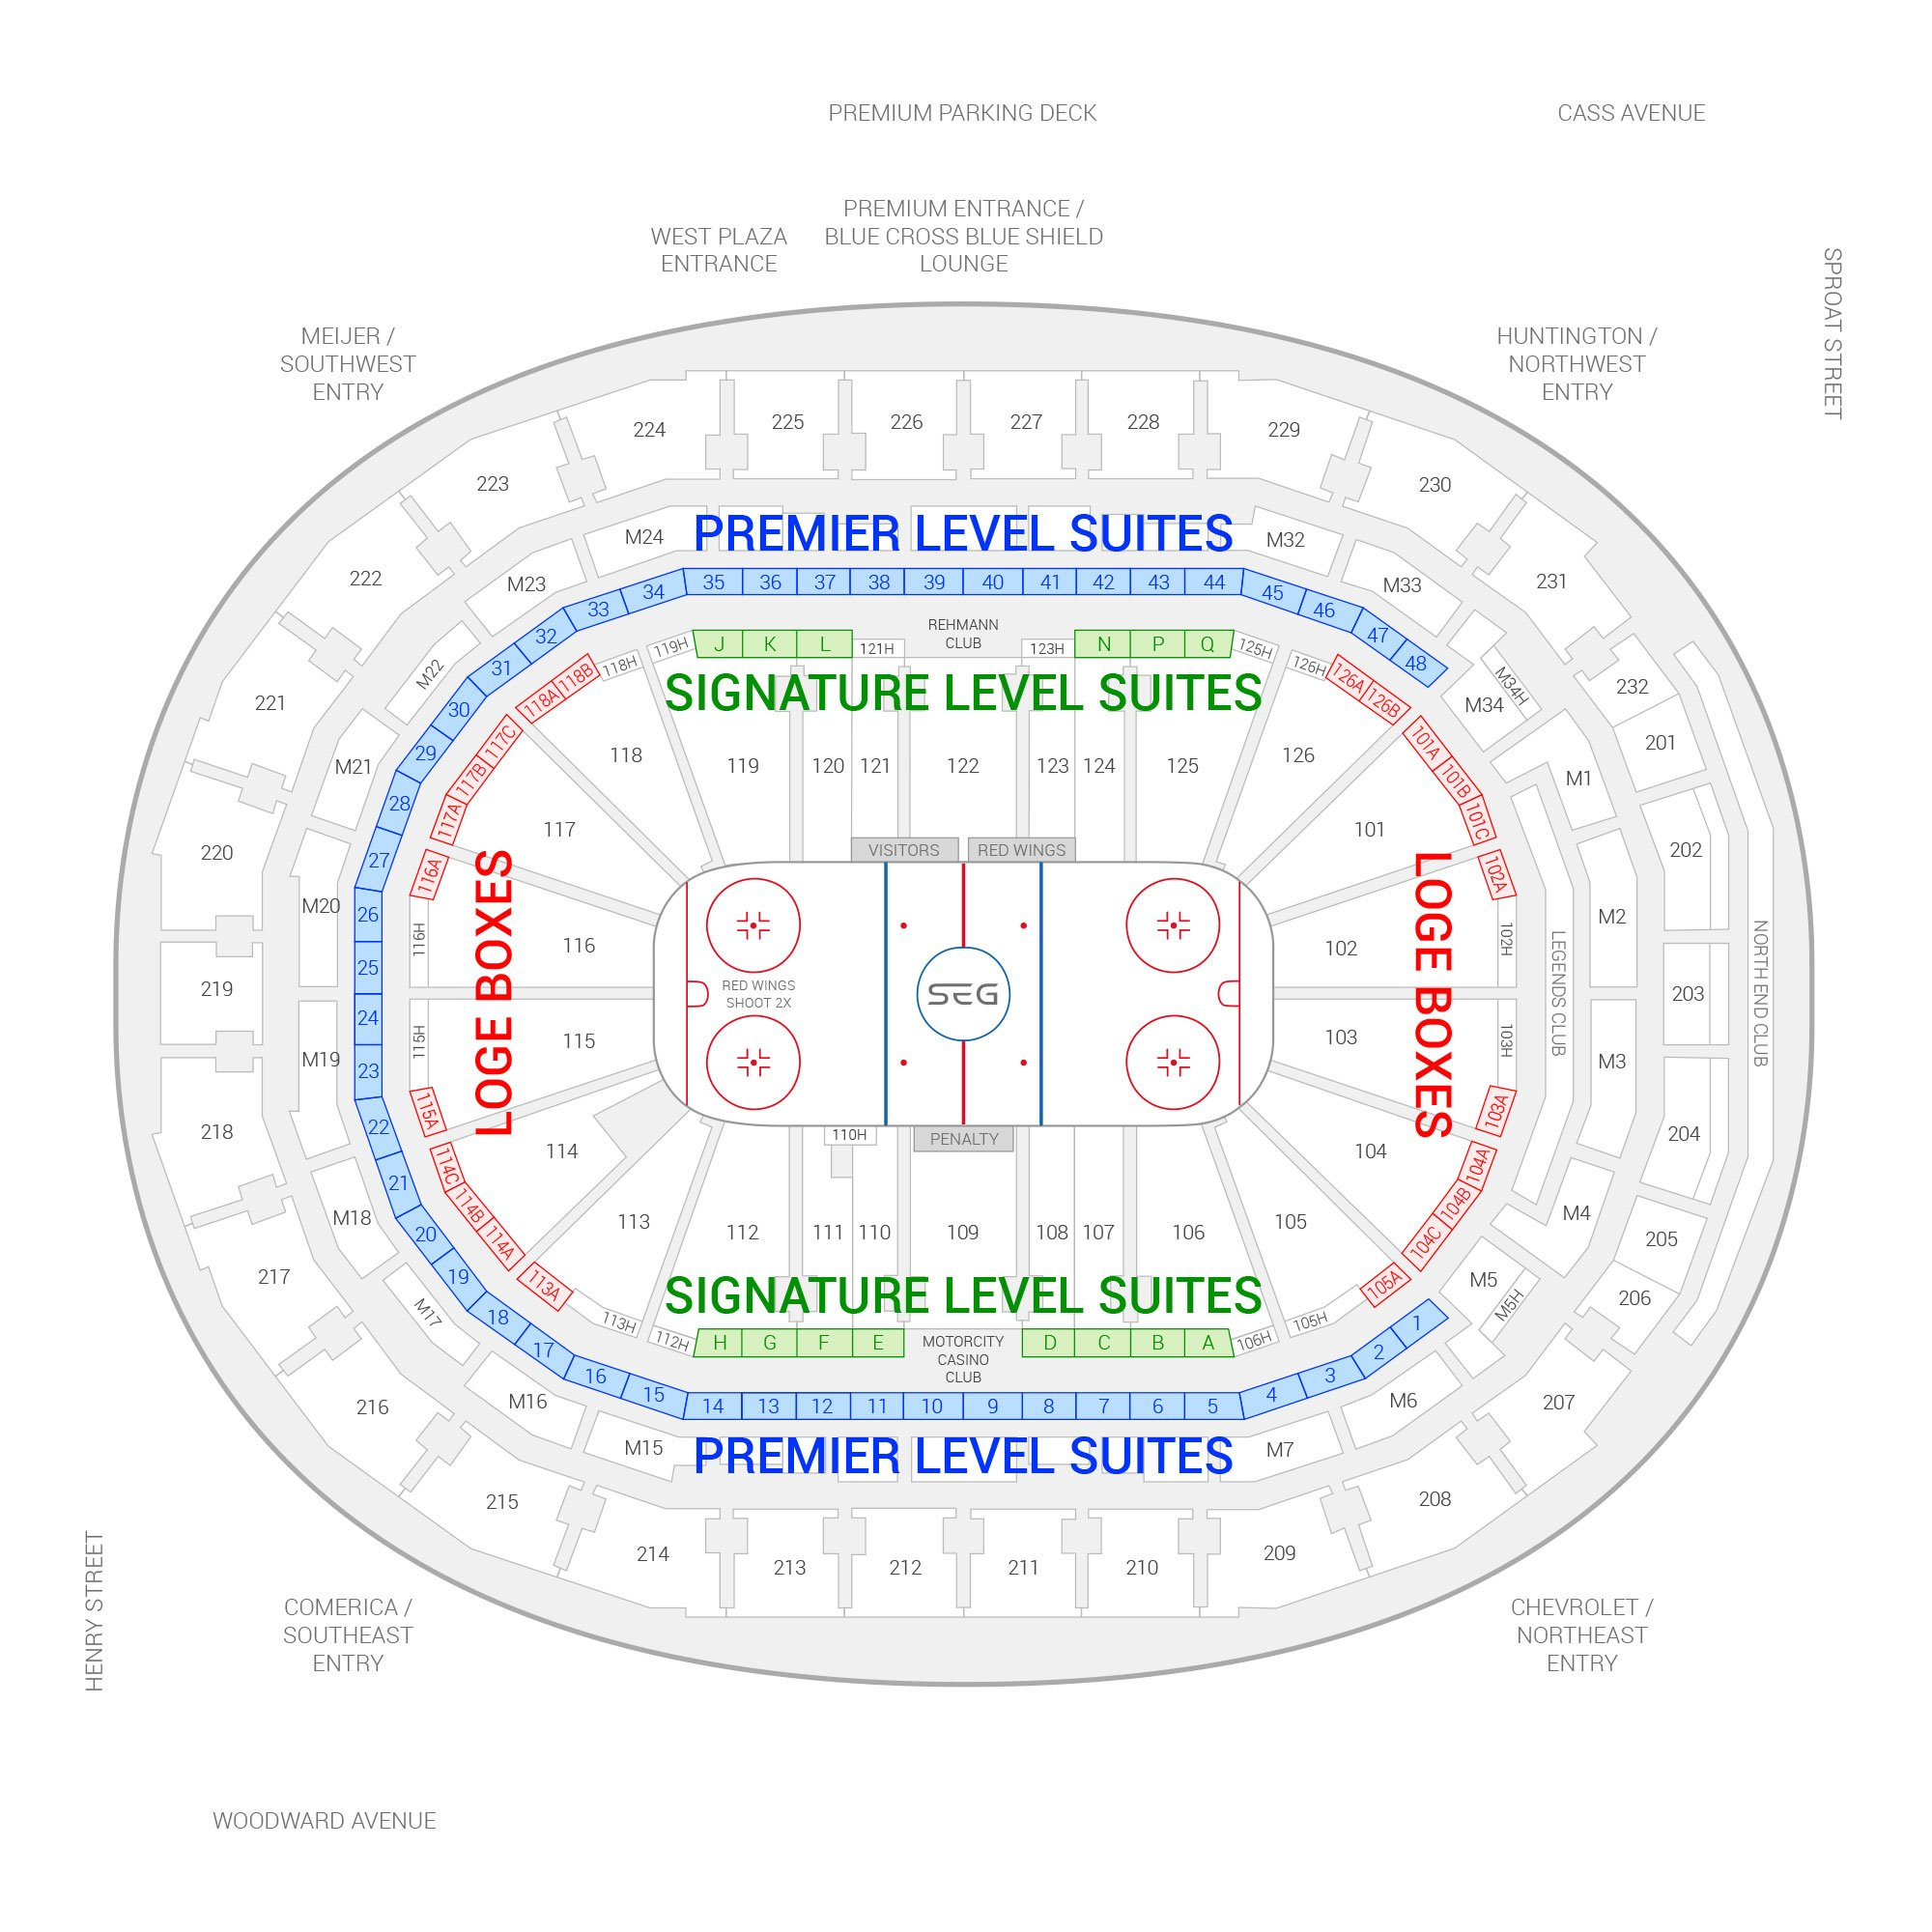 Little Caesars Arena / Detroit Red Wings Suite Map and Seating Chart